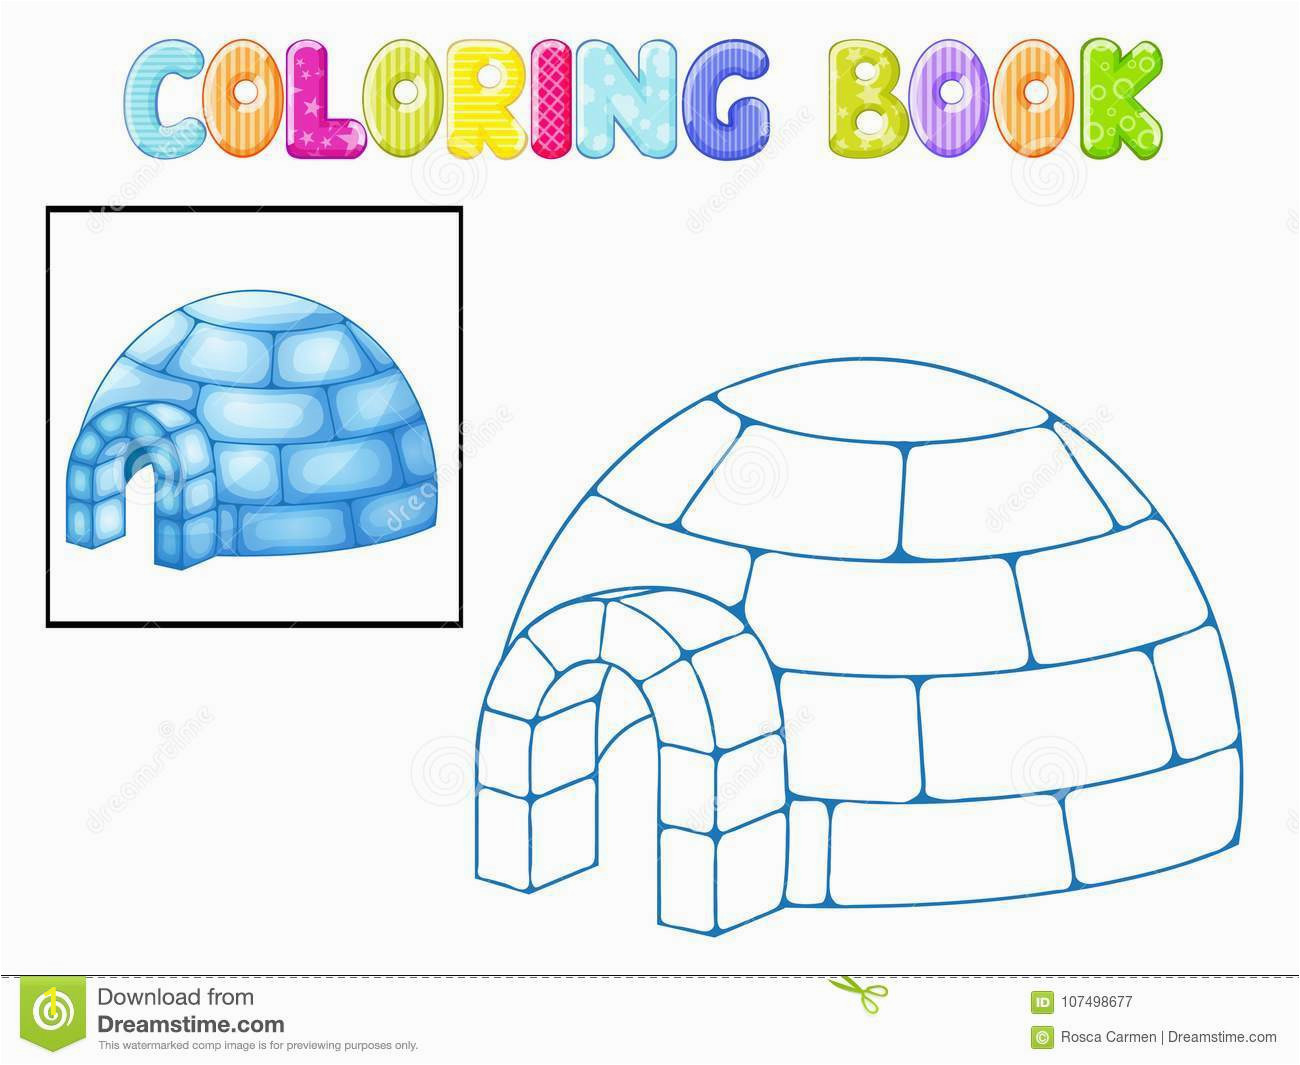 coloring igloo coloring igloo white background